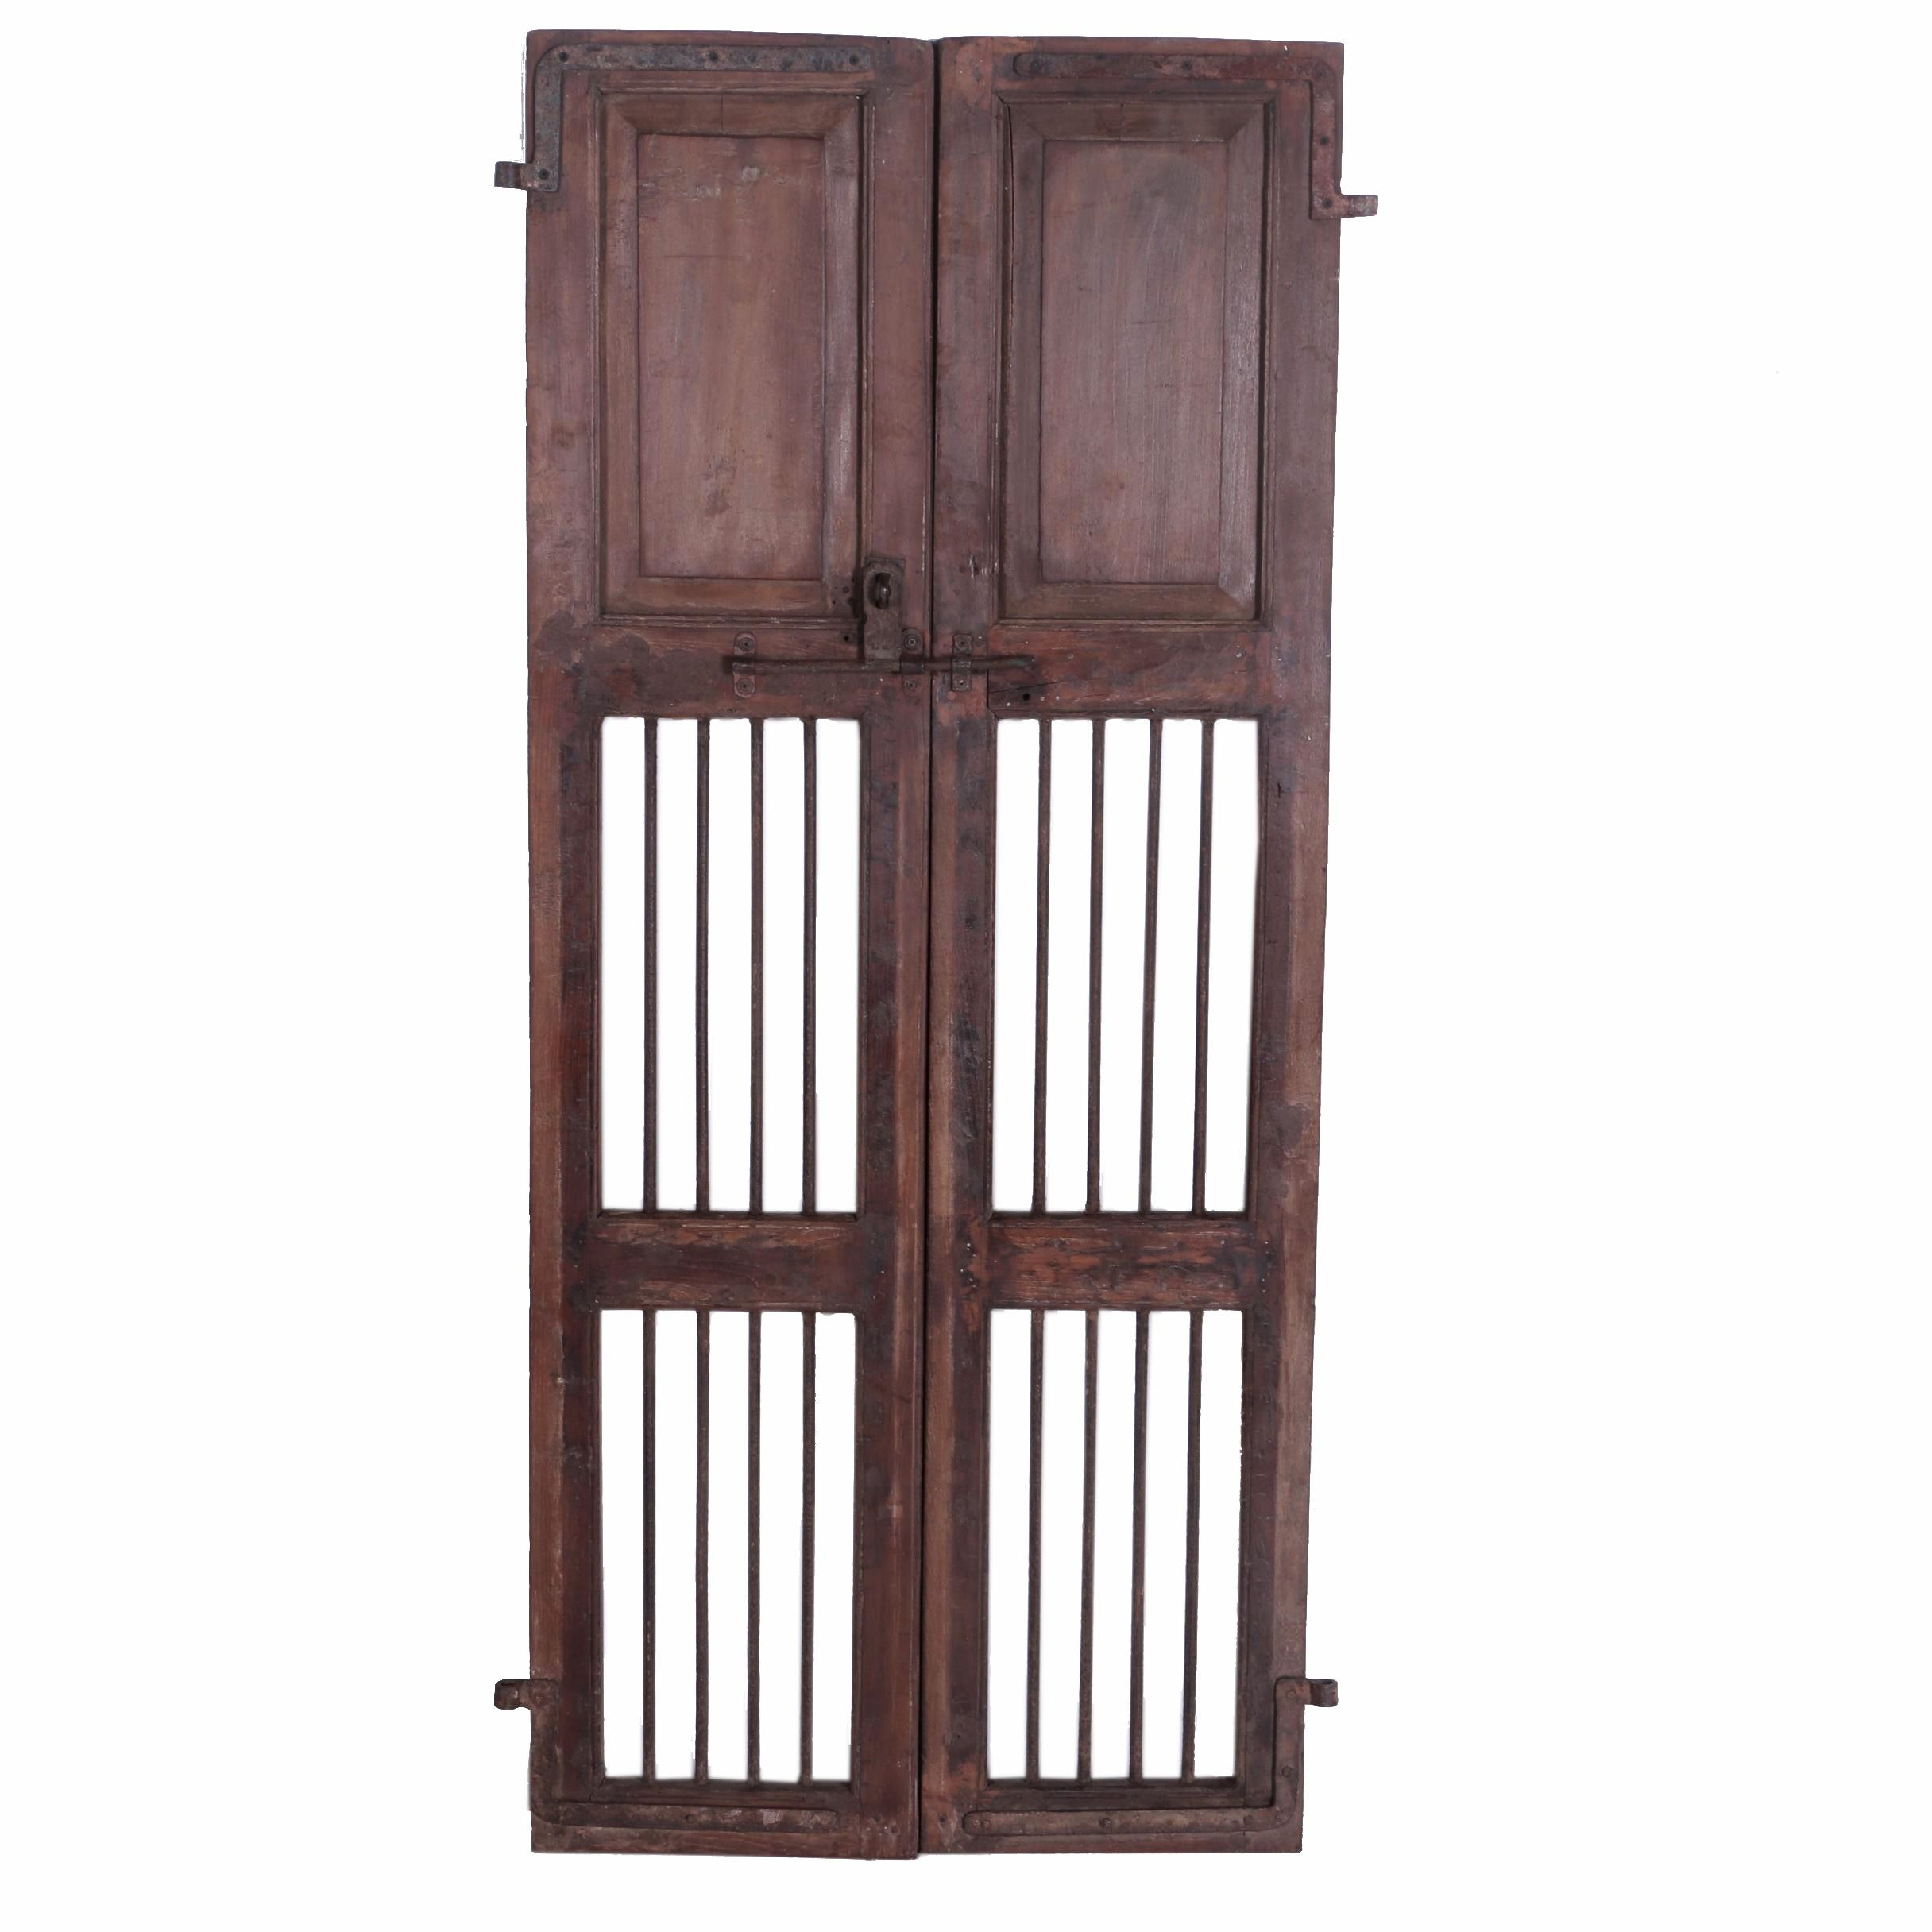 Rustic Wooden Doors  sc 1 st  EBTH.com & Architectural Artifact Auctions | Architectural Artifacts for Sale ...